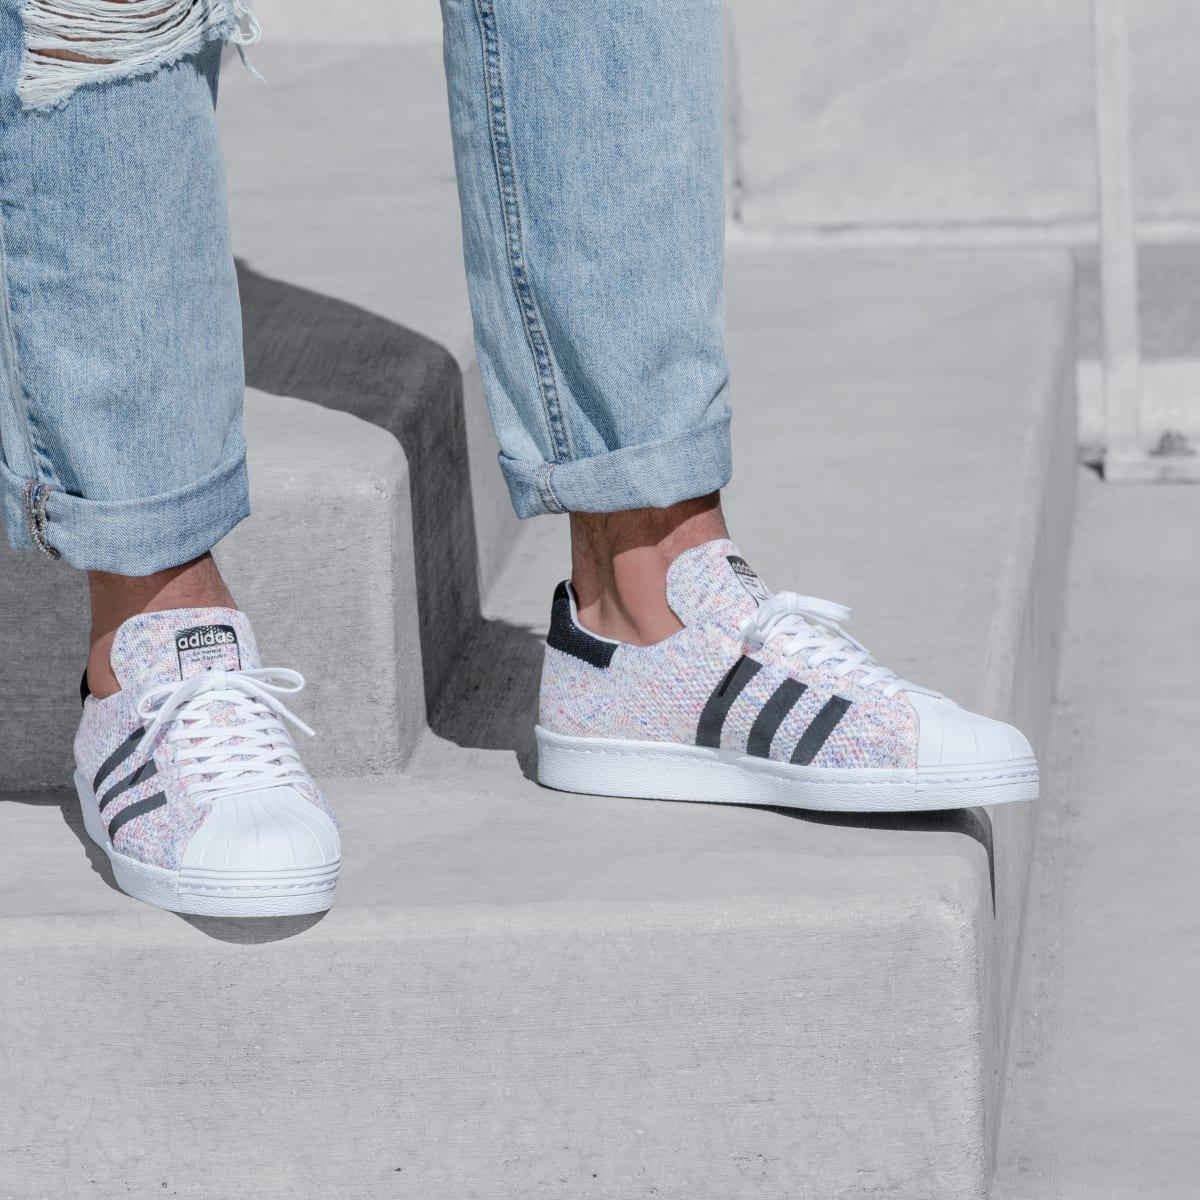 adidas Presents the Superstar 80s Primeknit Multi-Color Pack ...